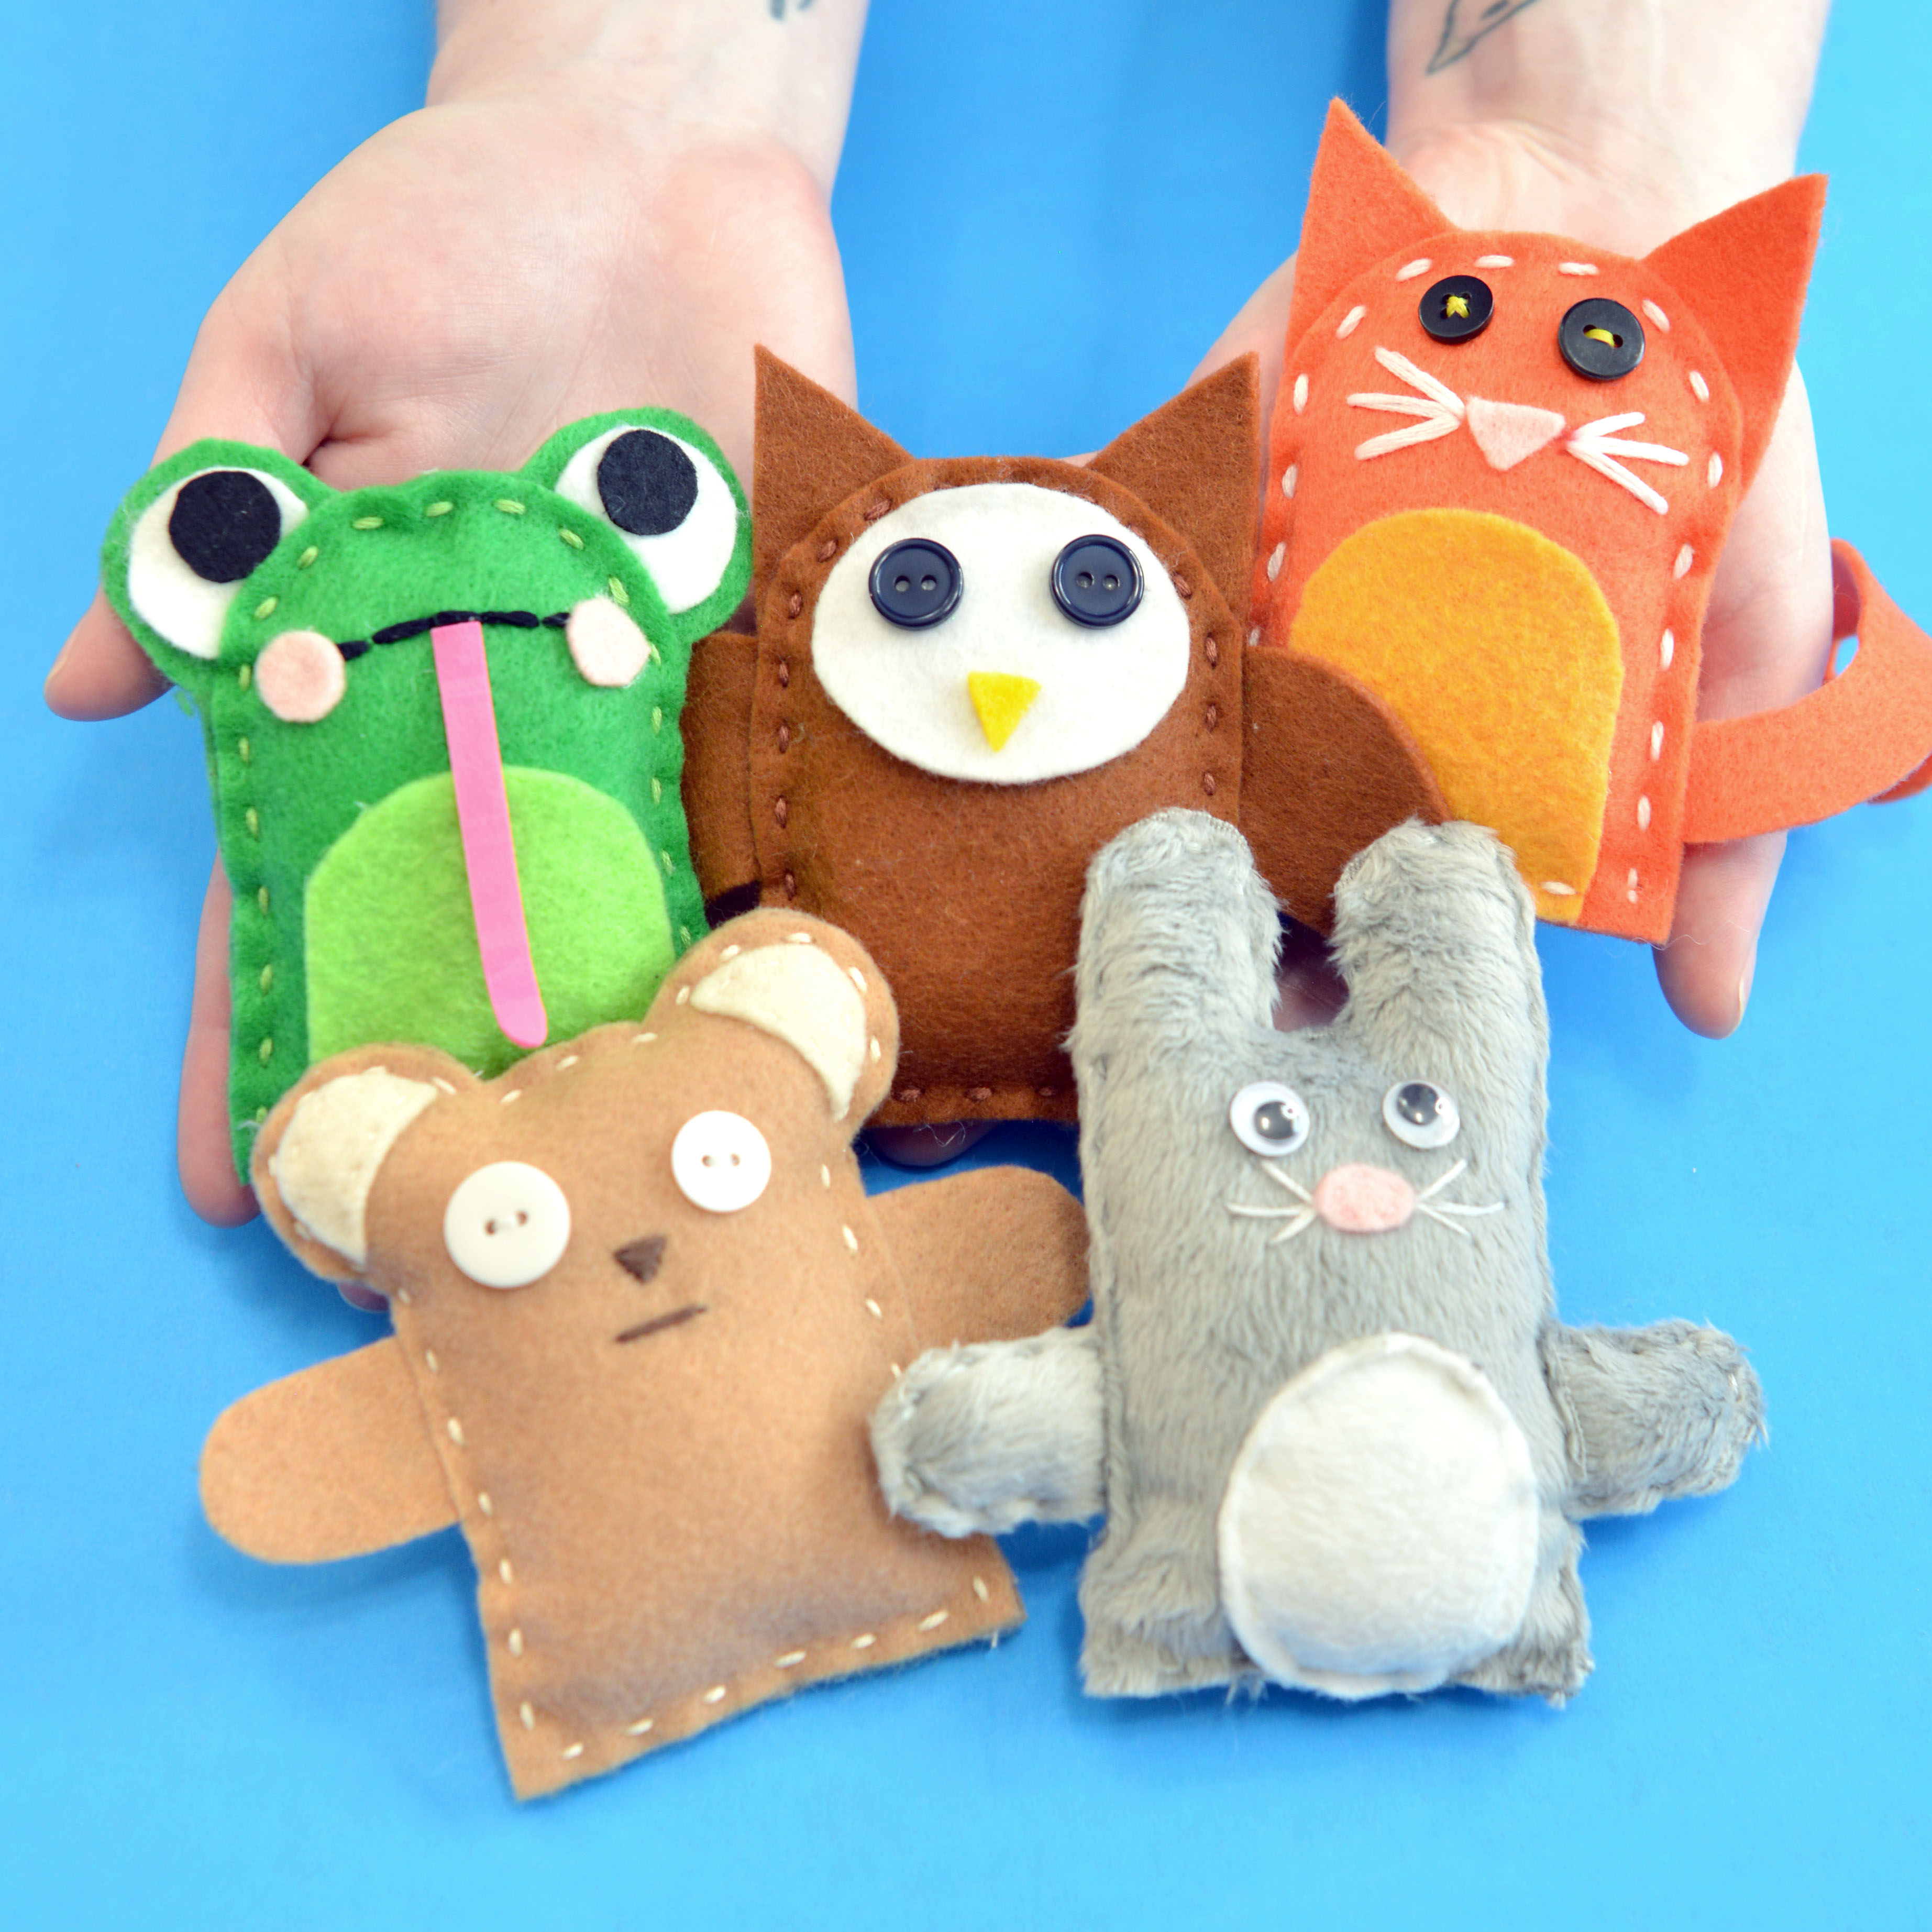 Hands holding handmade plushie examples: a frog, owl, cat, bear, and bunny.